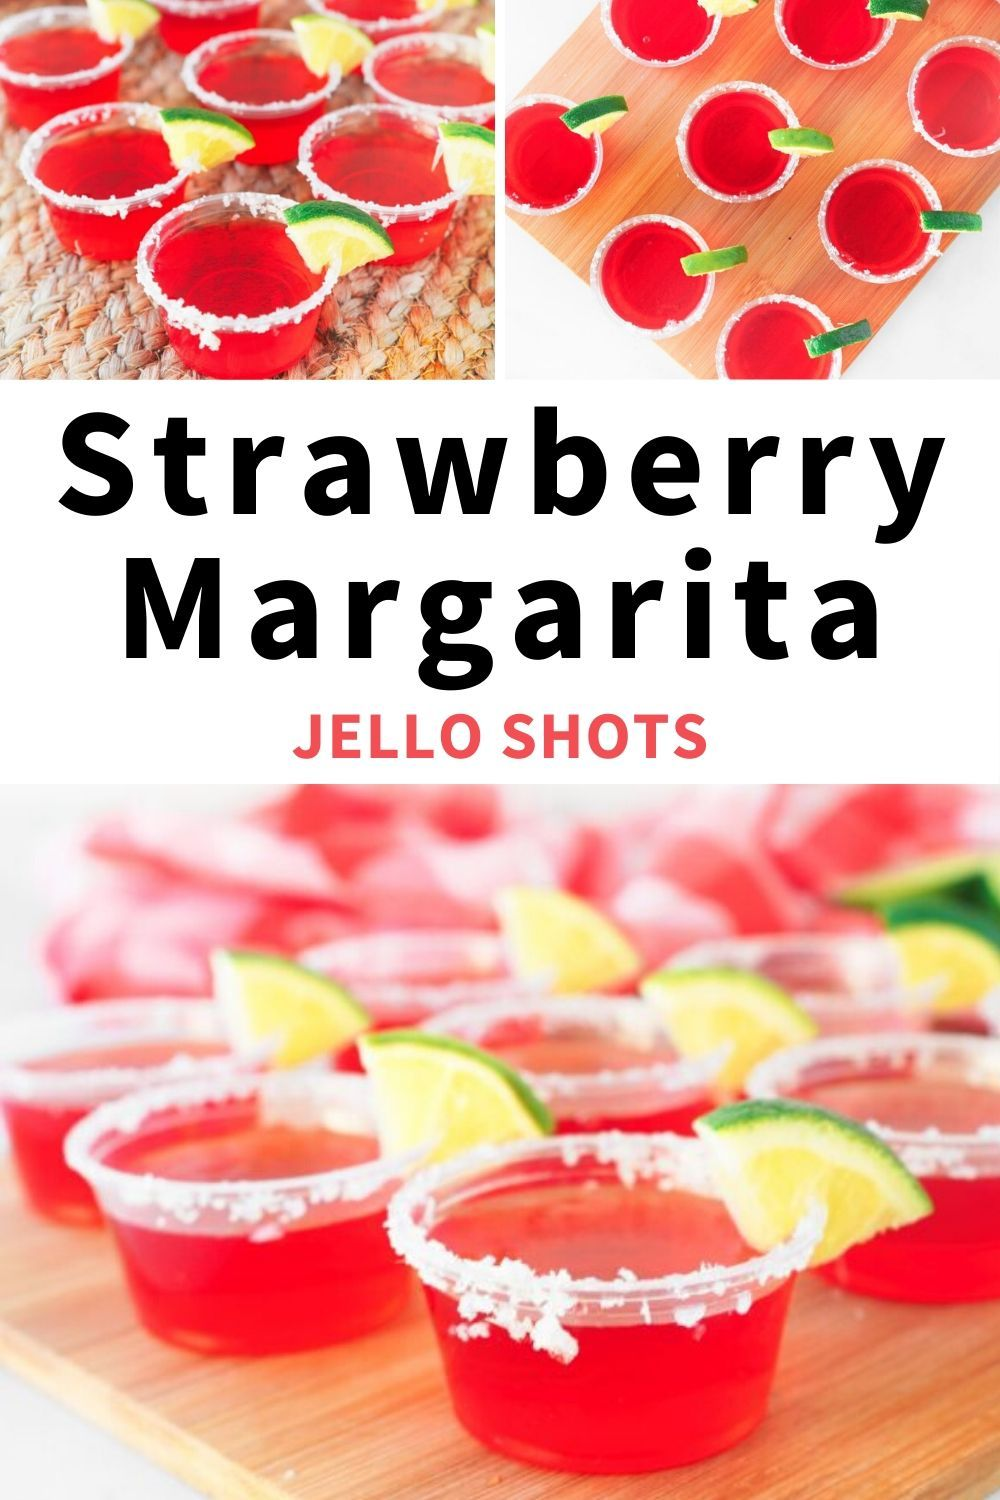 Strawberry Margarita Vegan Jello Shots Wow It S Veggie Recipe Jello Shot Recipes Cocktail Recipes Easy Shot Recipes